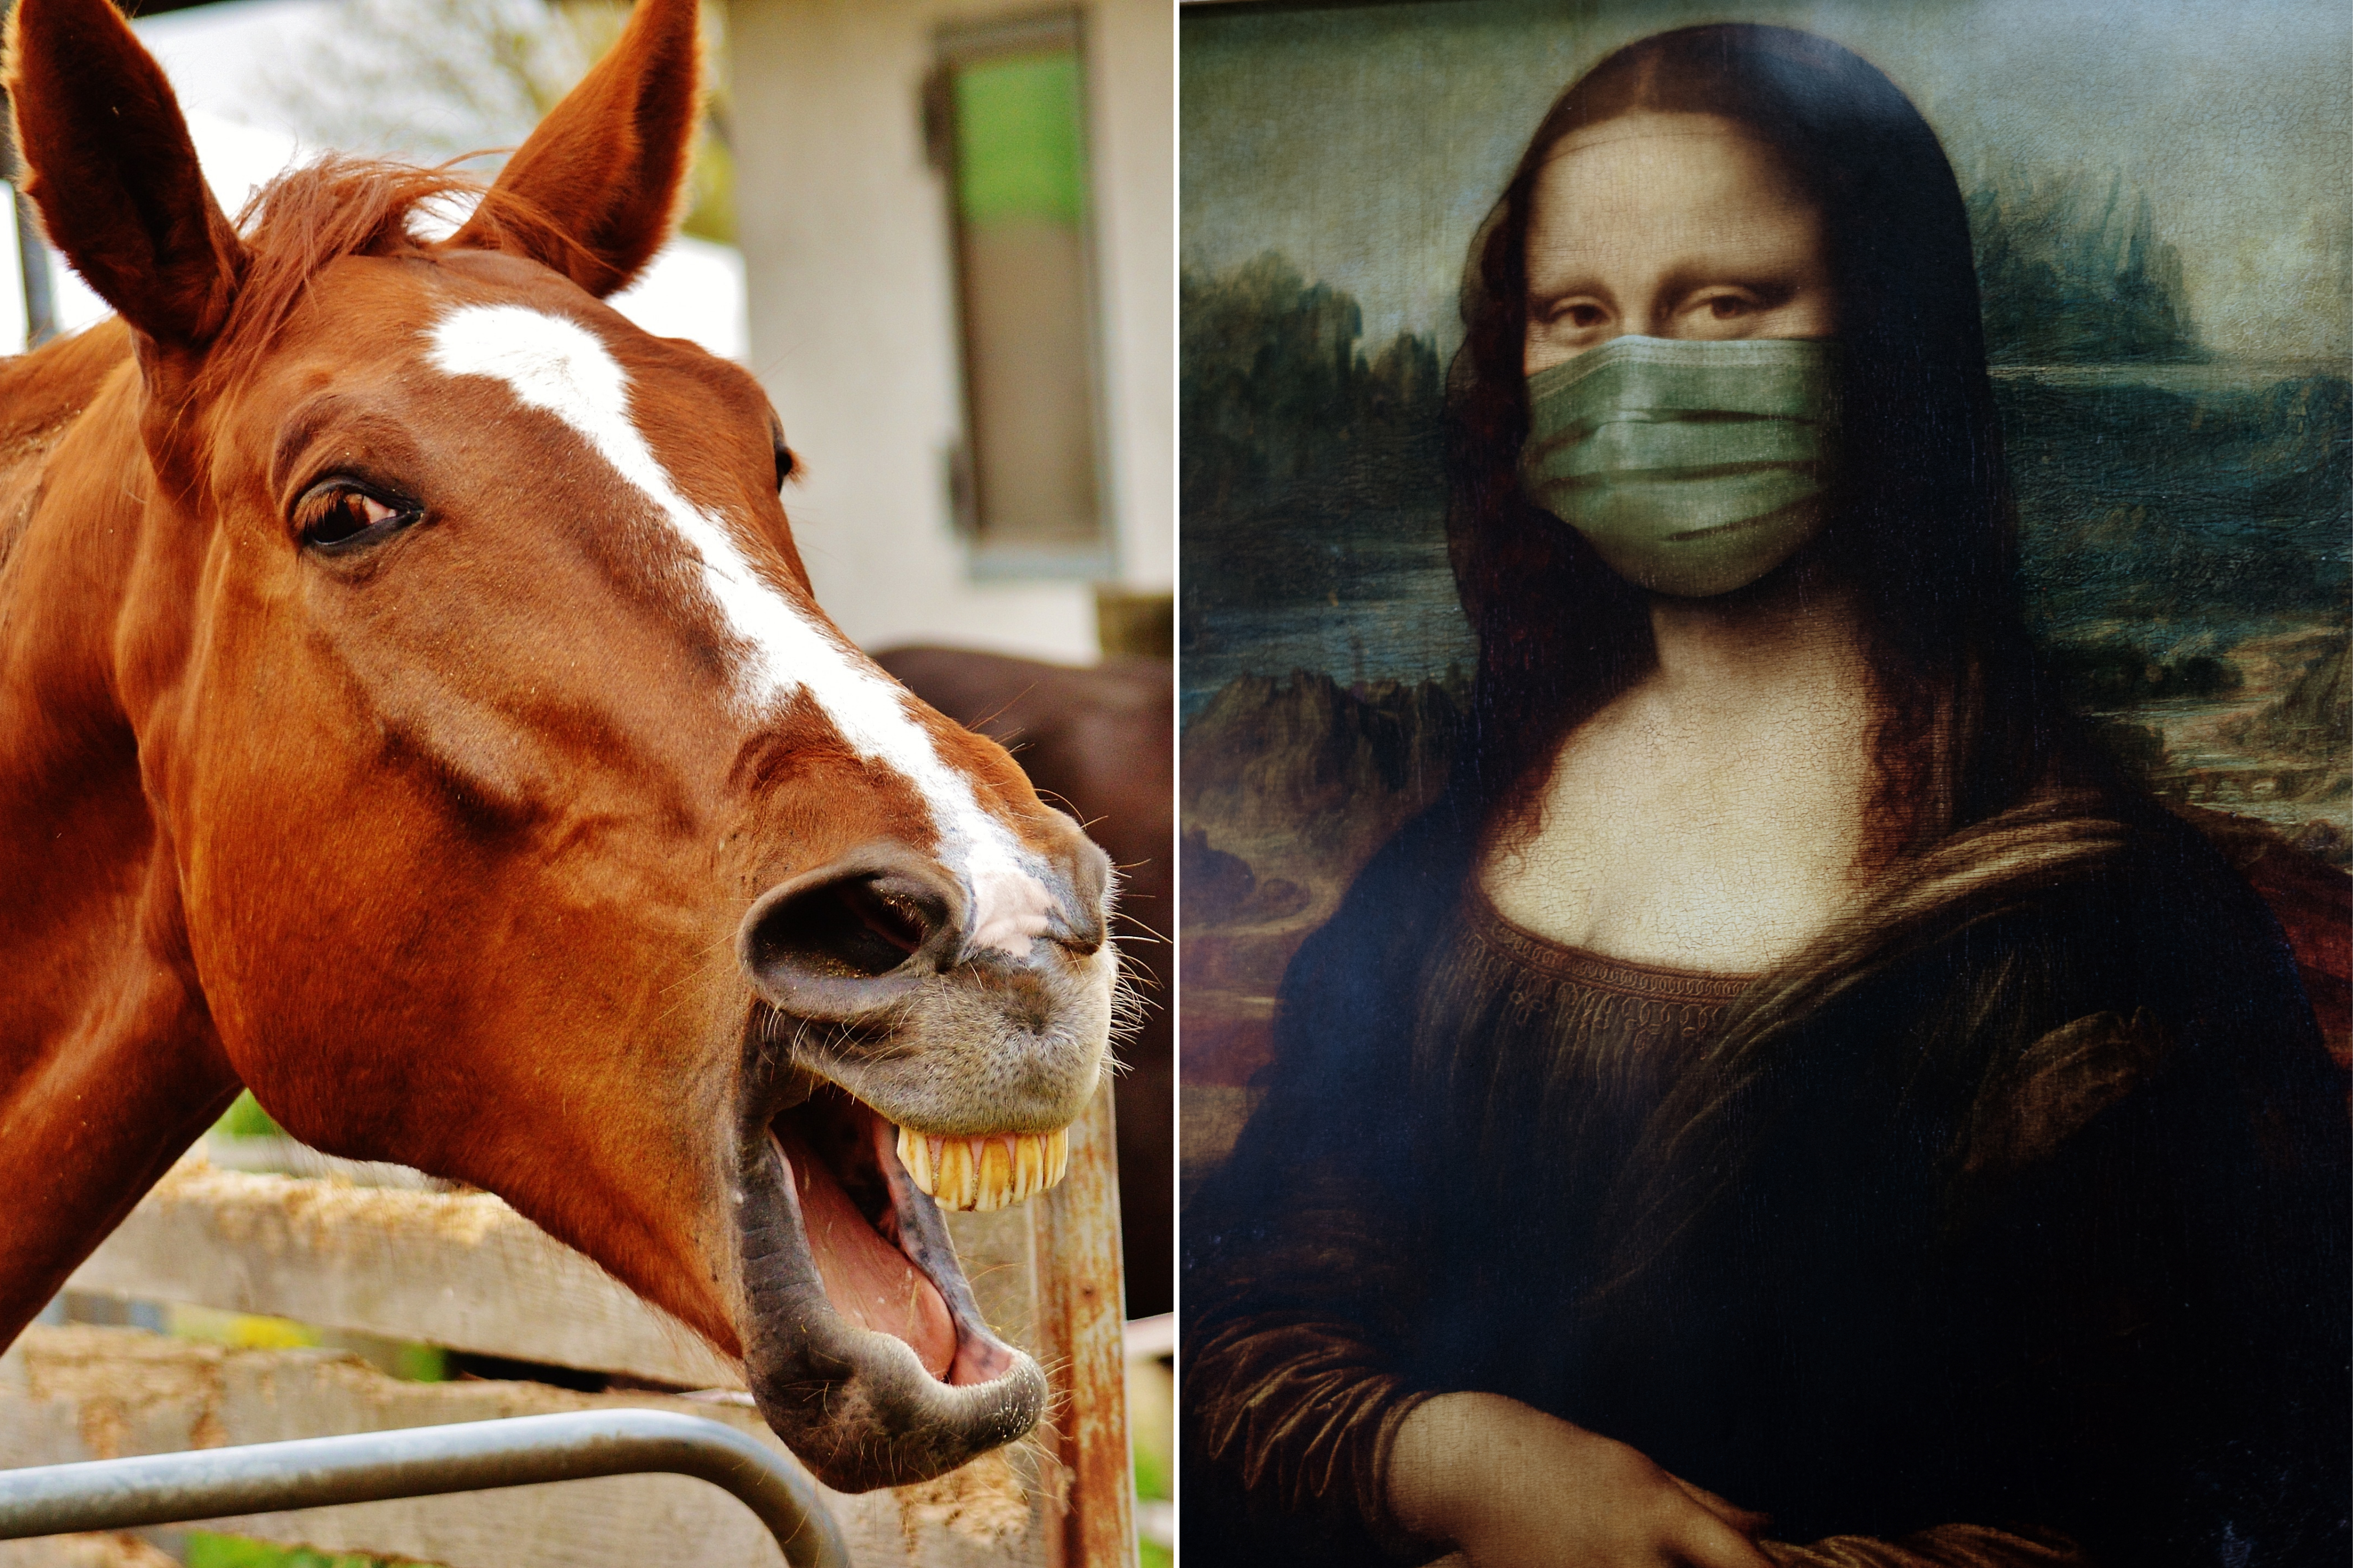 An mage of a laughing horse and Mona Lisa in a nose mask.